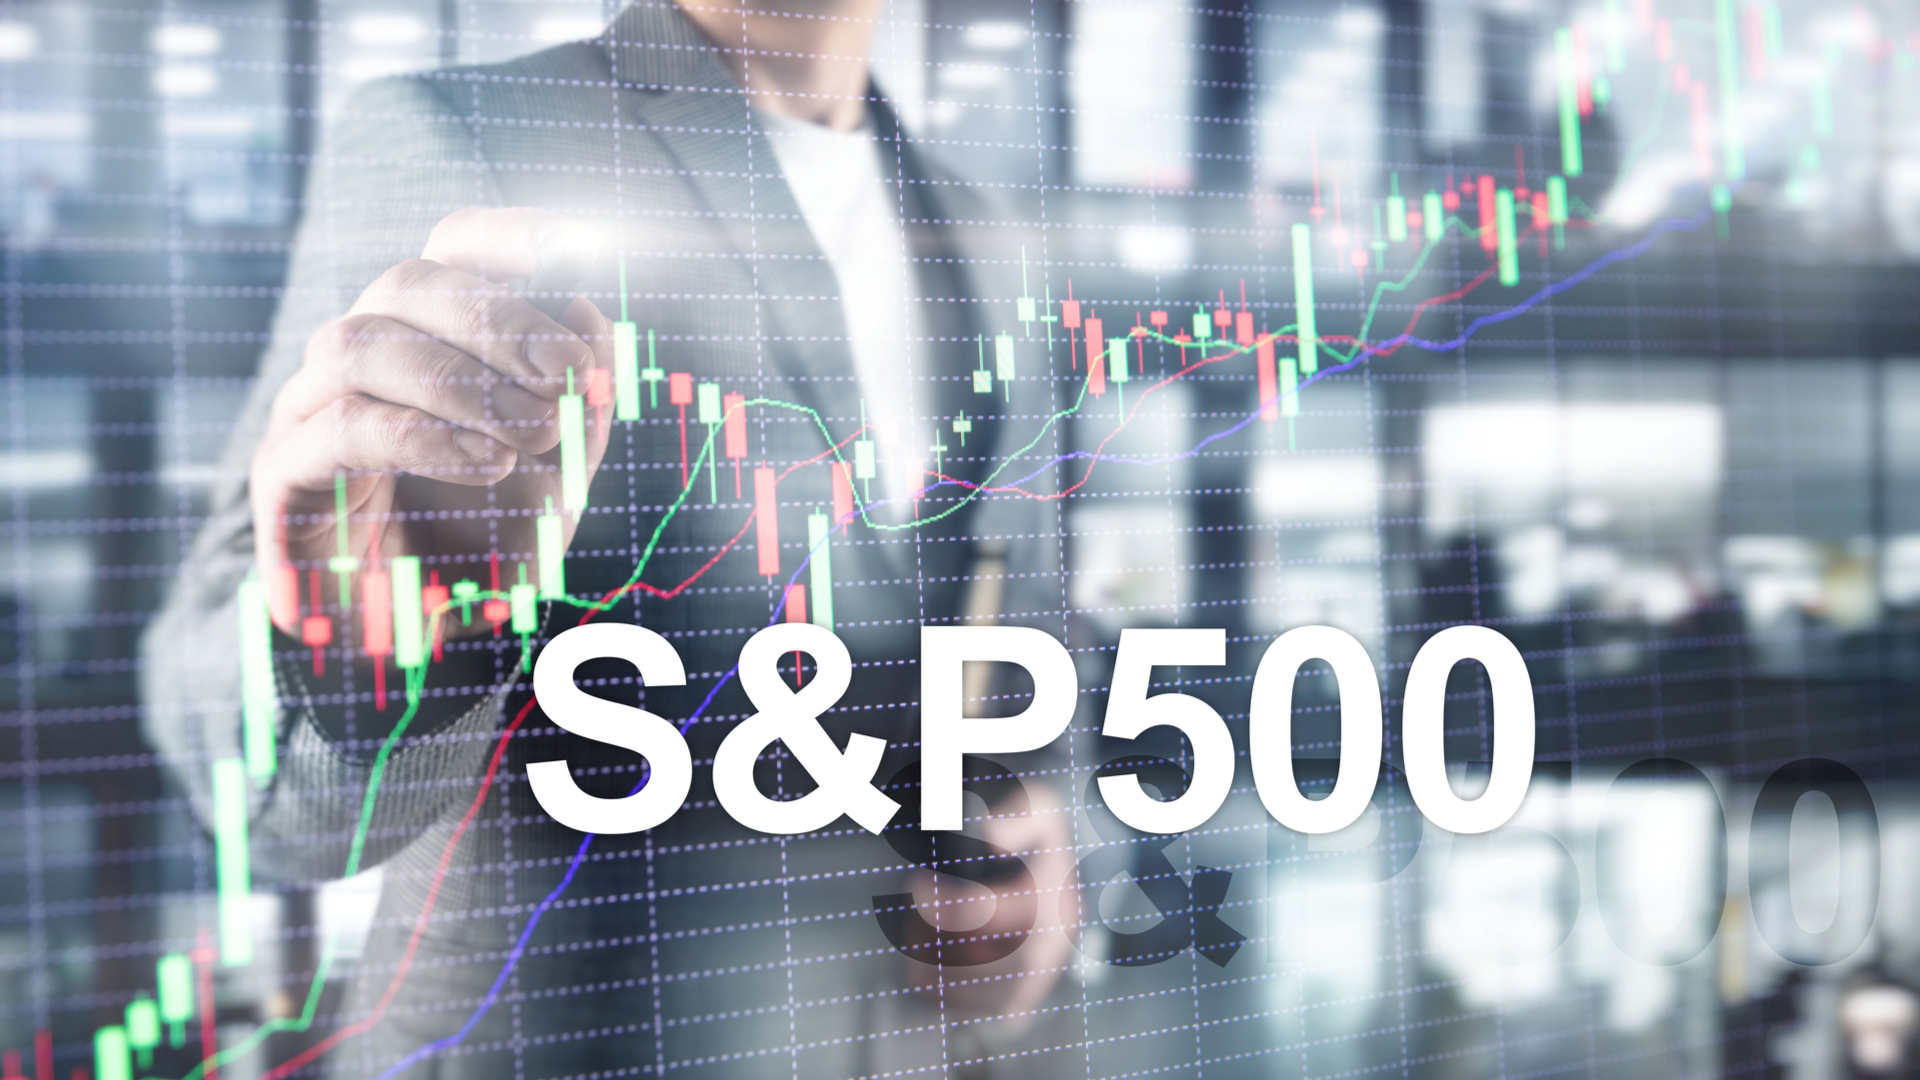 Global Financial Engineering Trade Analysis for S&P 500